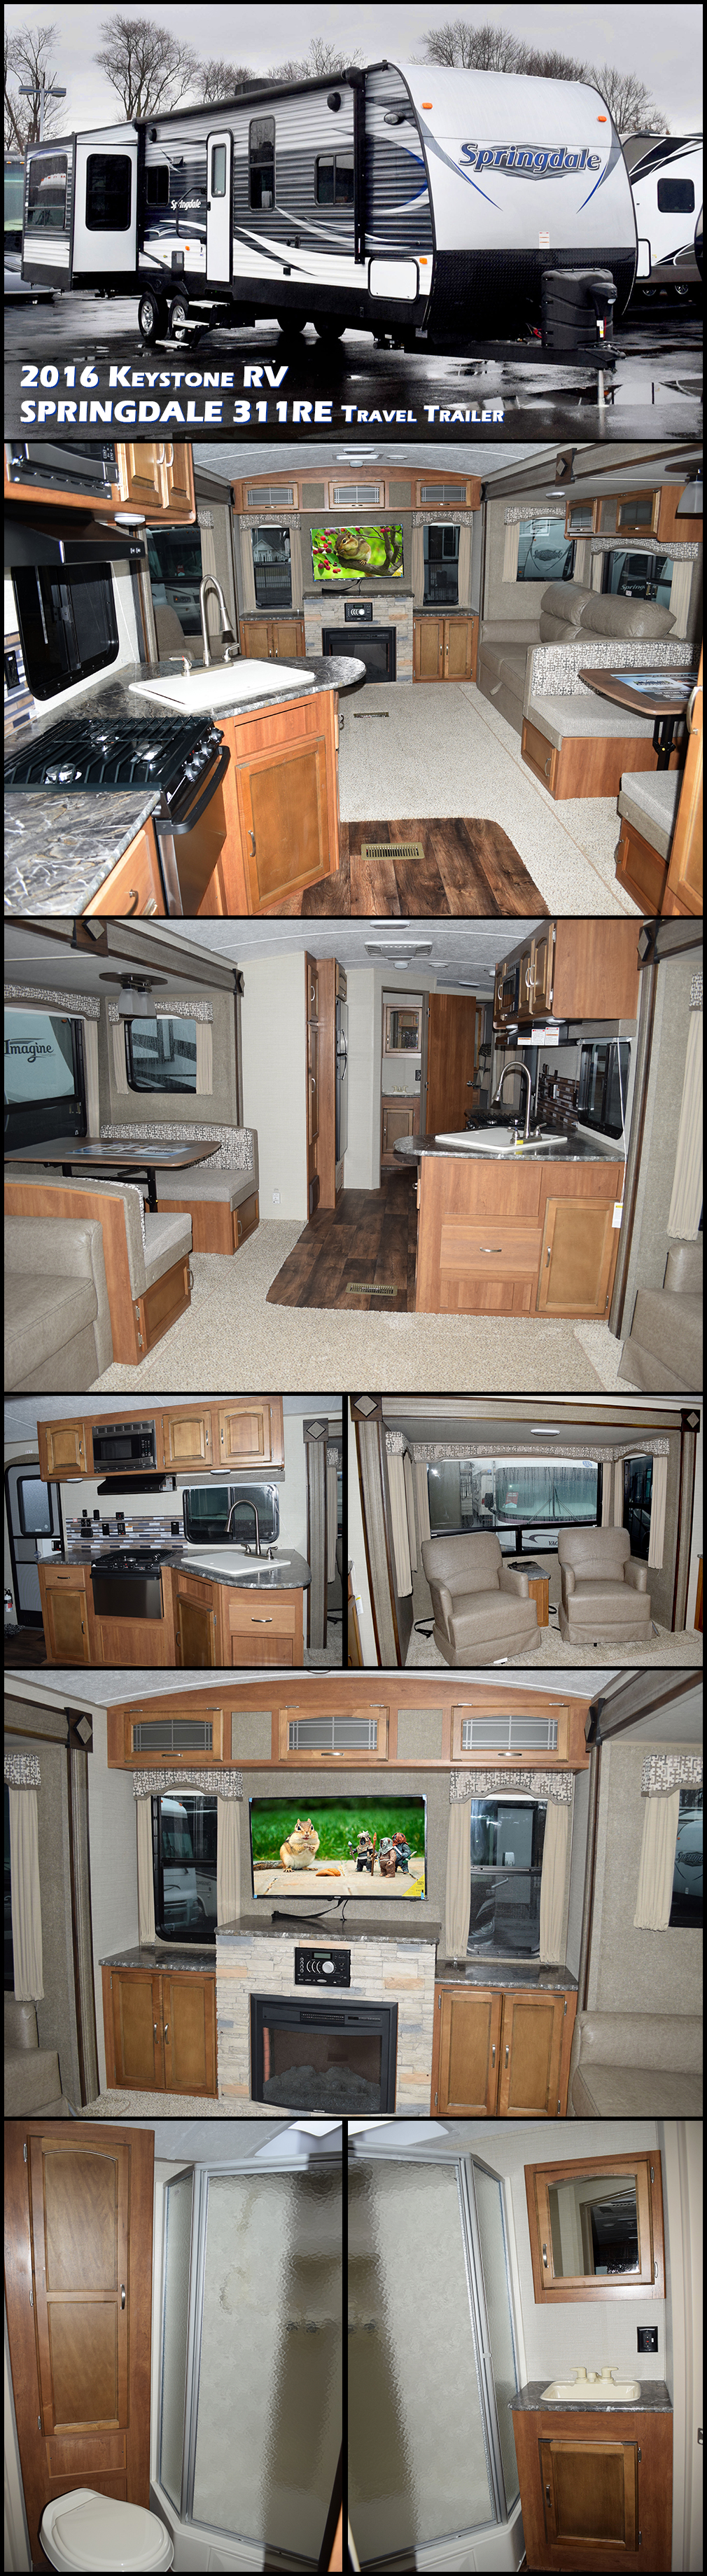 Inventory Camping trailer for sale, Camping glamping